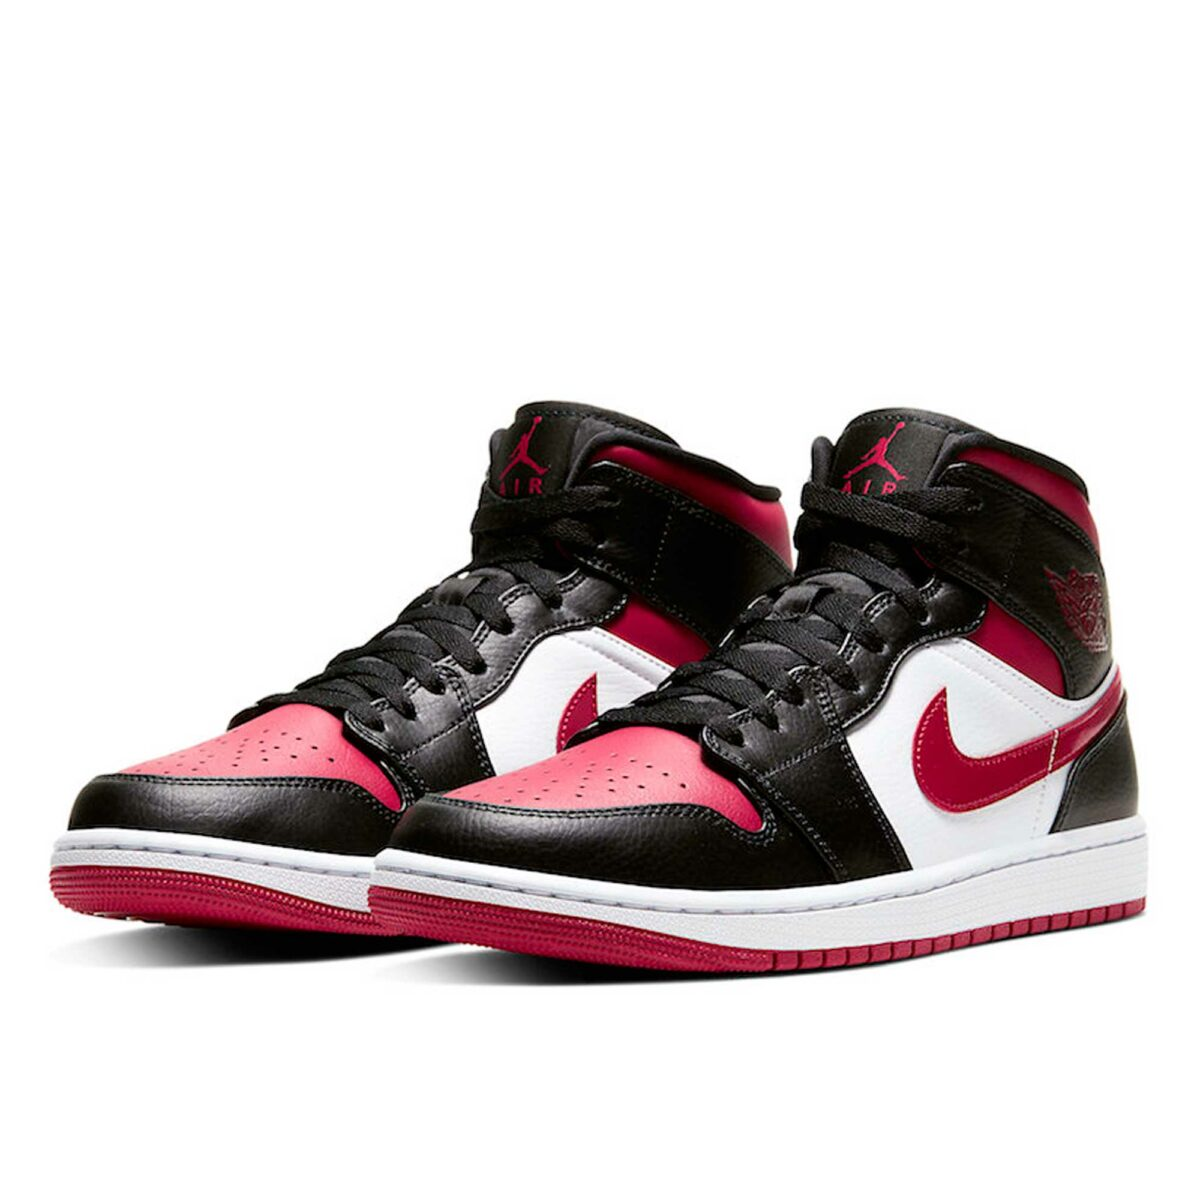 nike air Jordan 1 black noble red 554724_066 купить